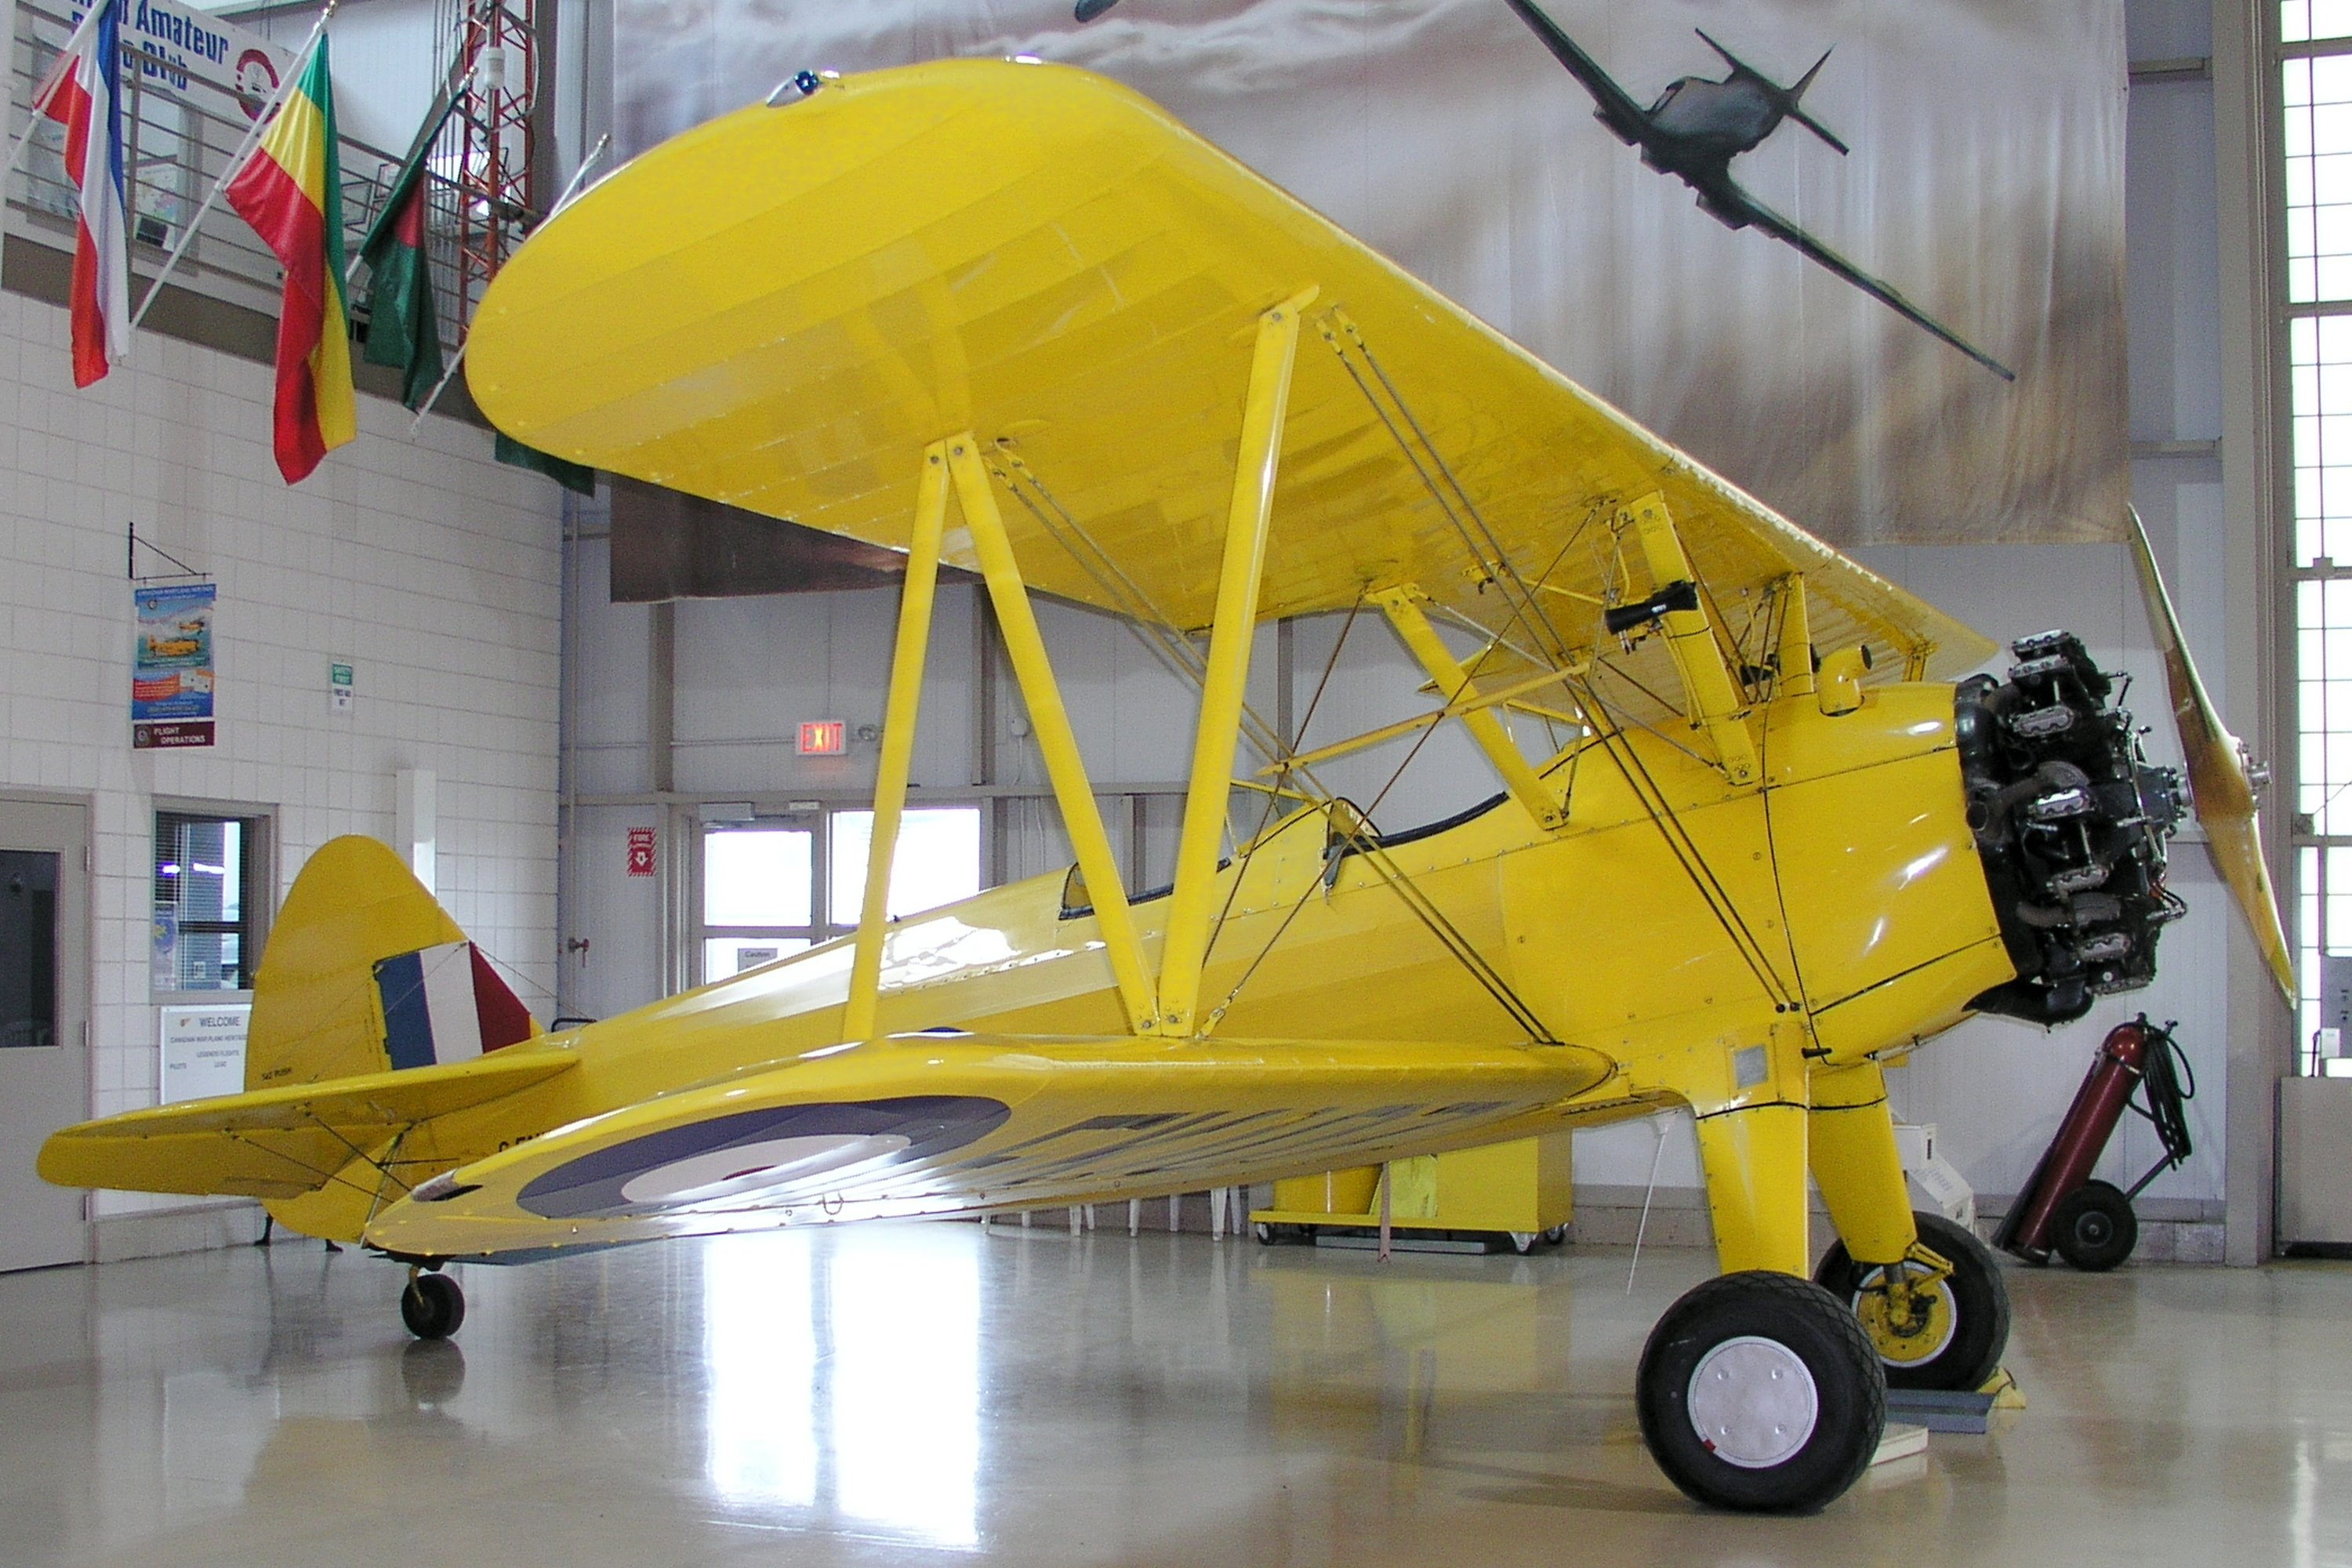 Boeing-Stearman PT-17 Kaydet specifications and photos